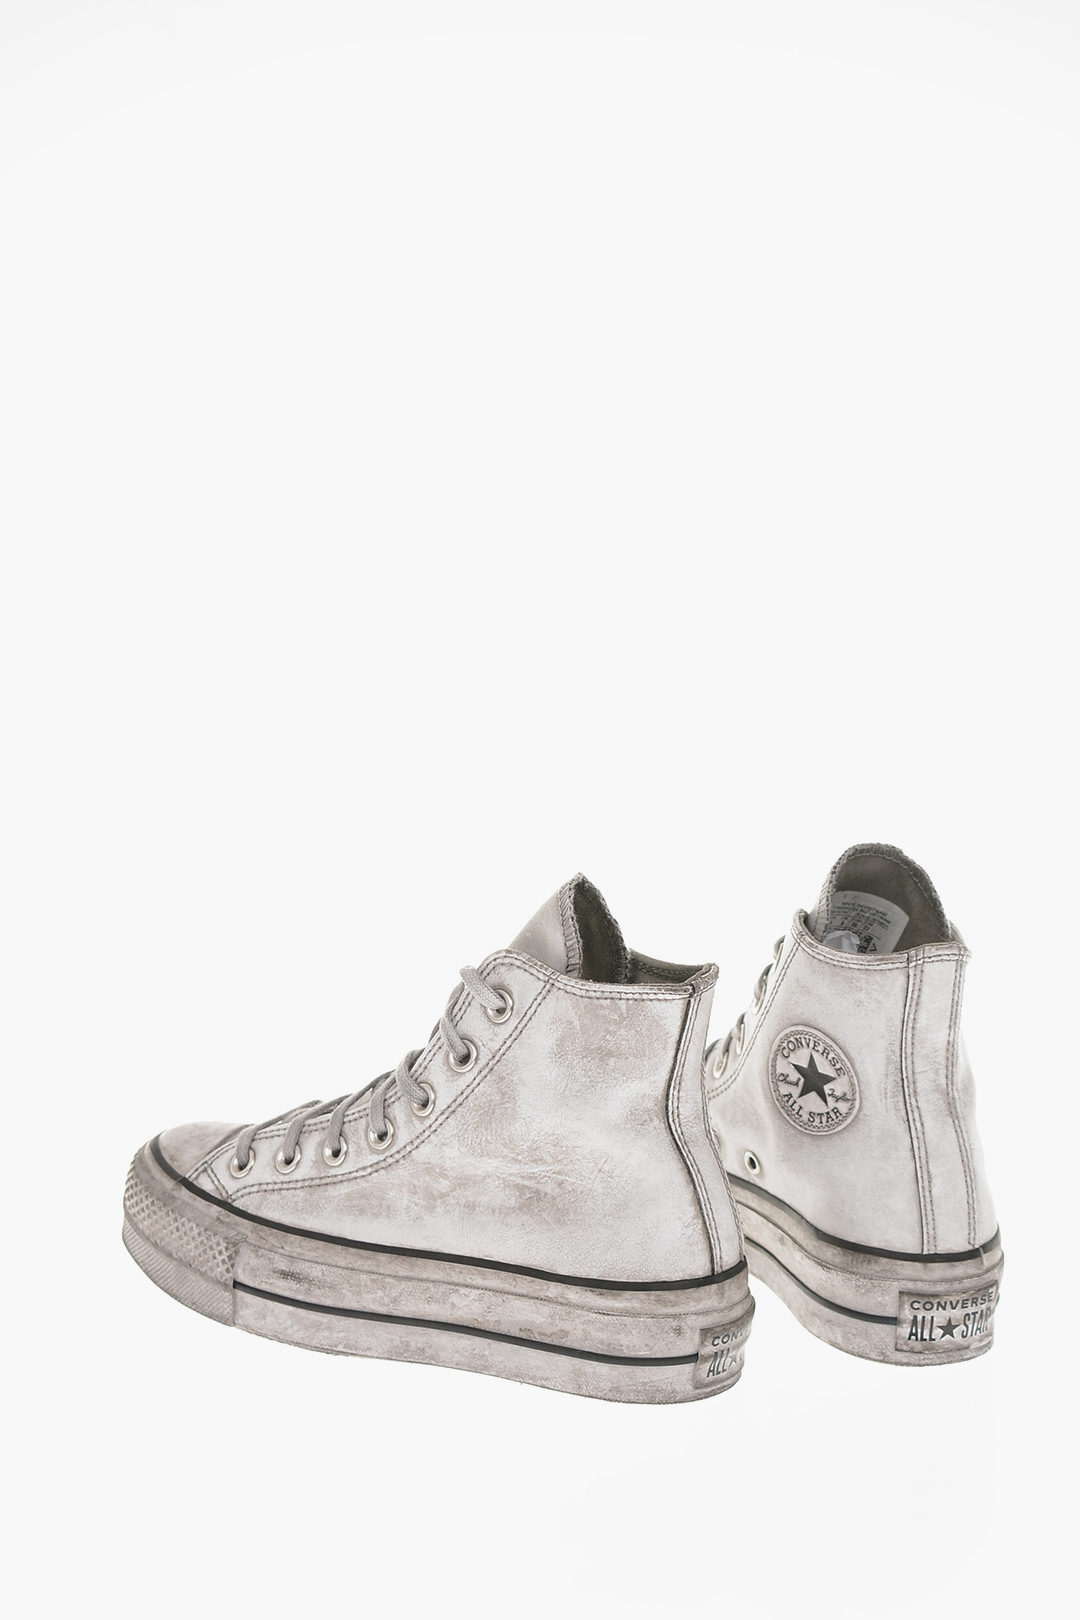 CHUCK TAYLOR ALL STAR High-top Sneakers in pelle Effetto Vintage